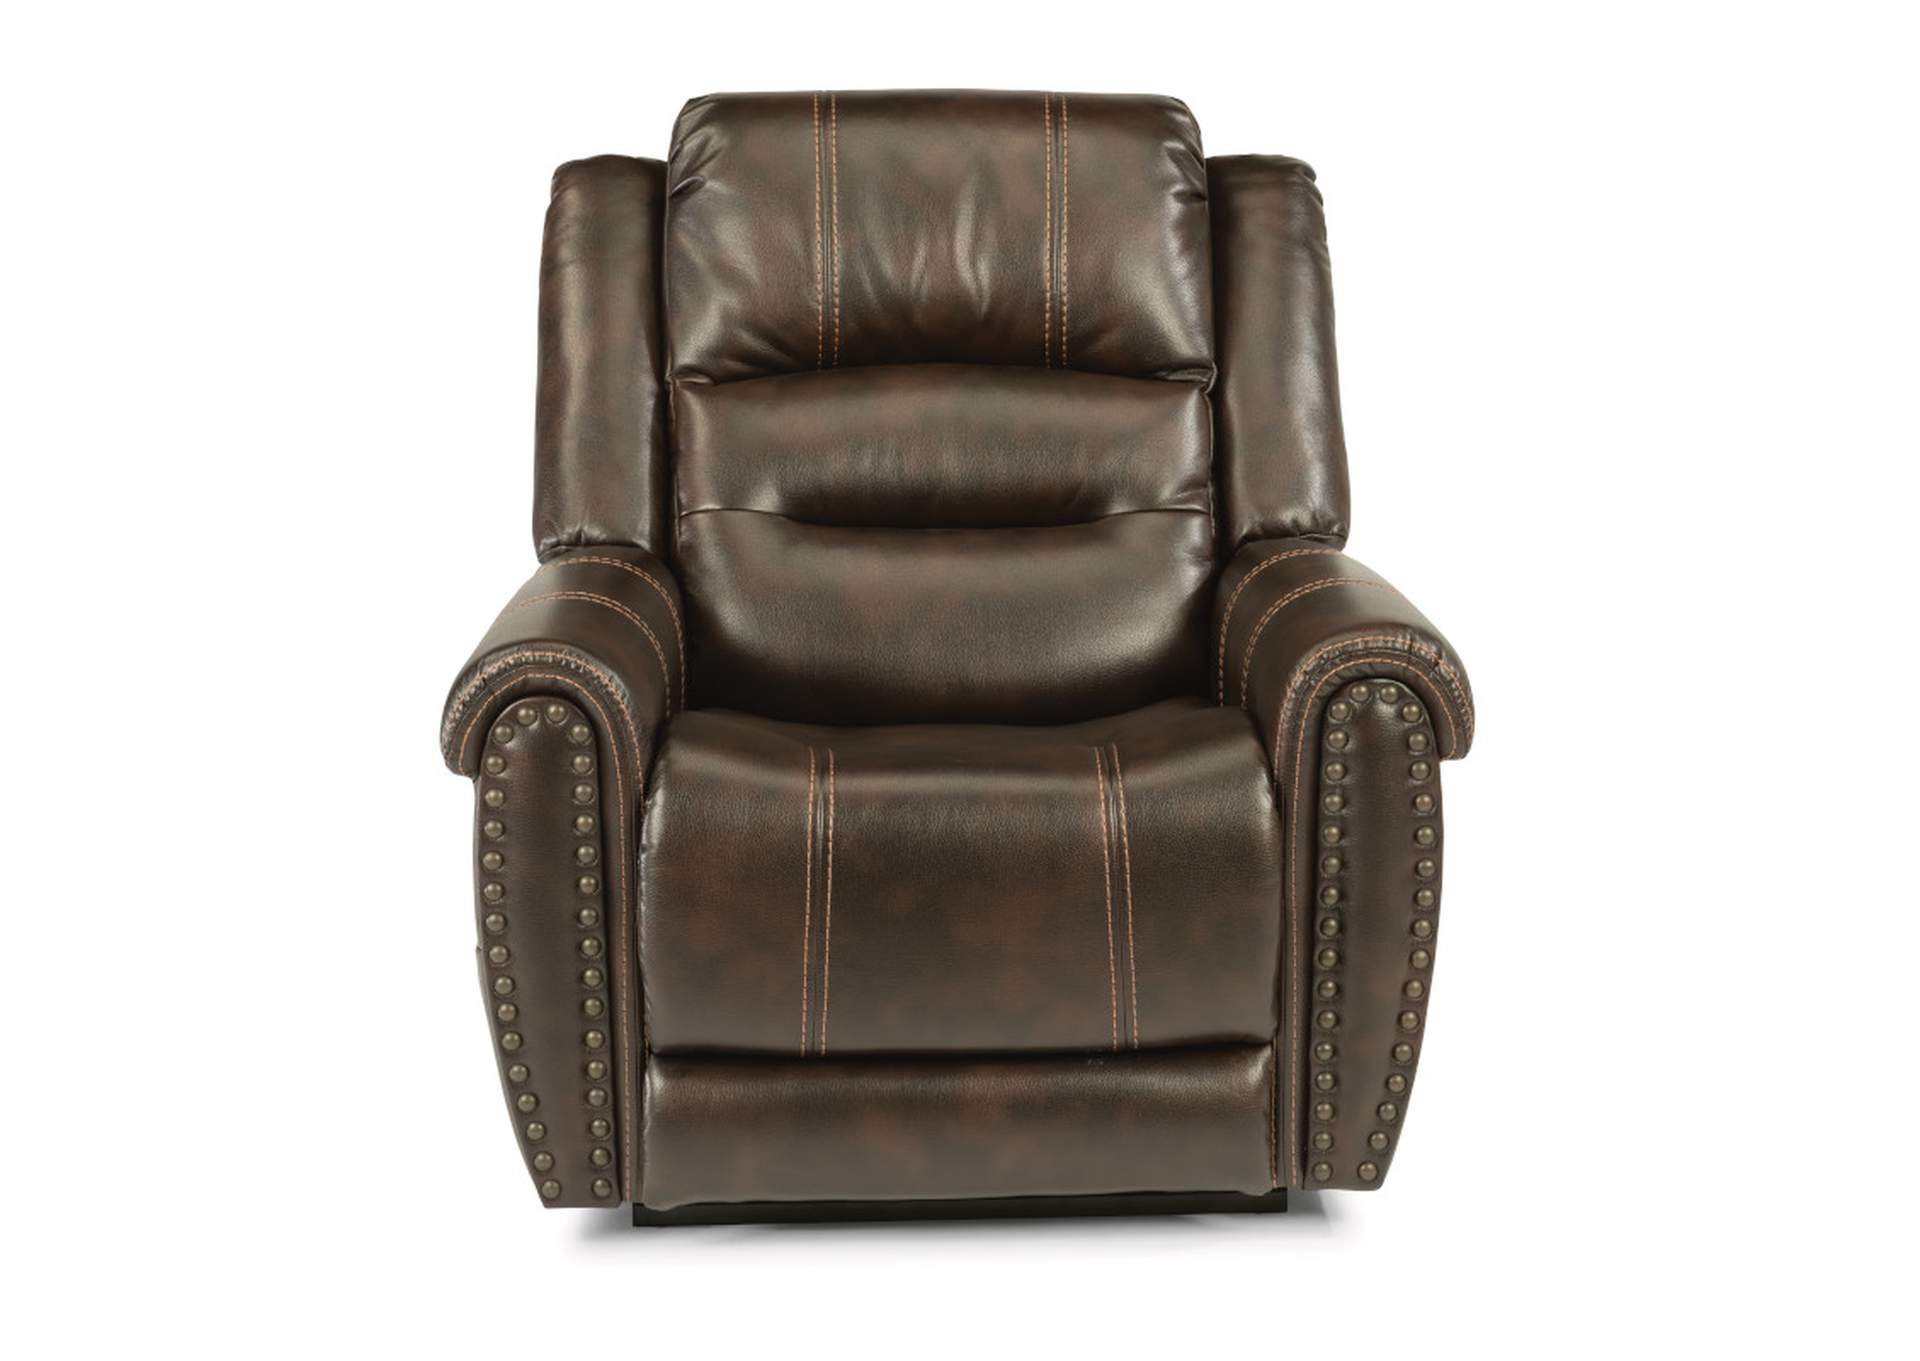 Oscar Triple Power Lift Recliner by Flexsteel,Old Brick